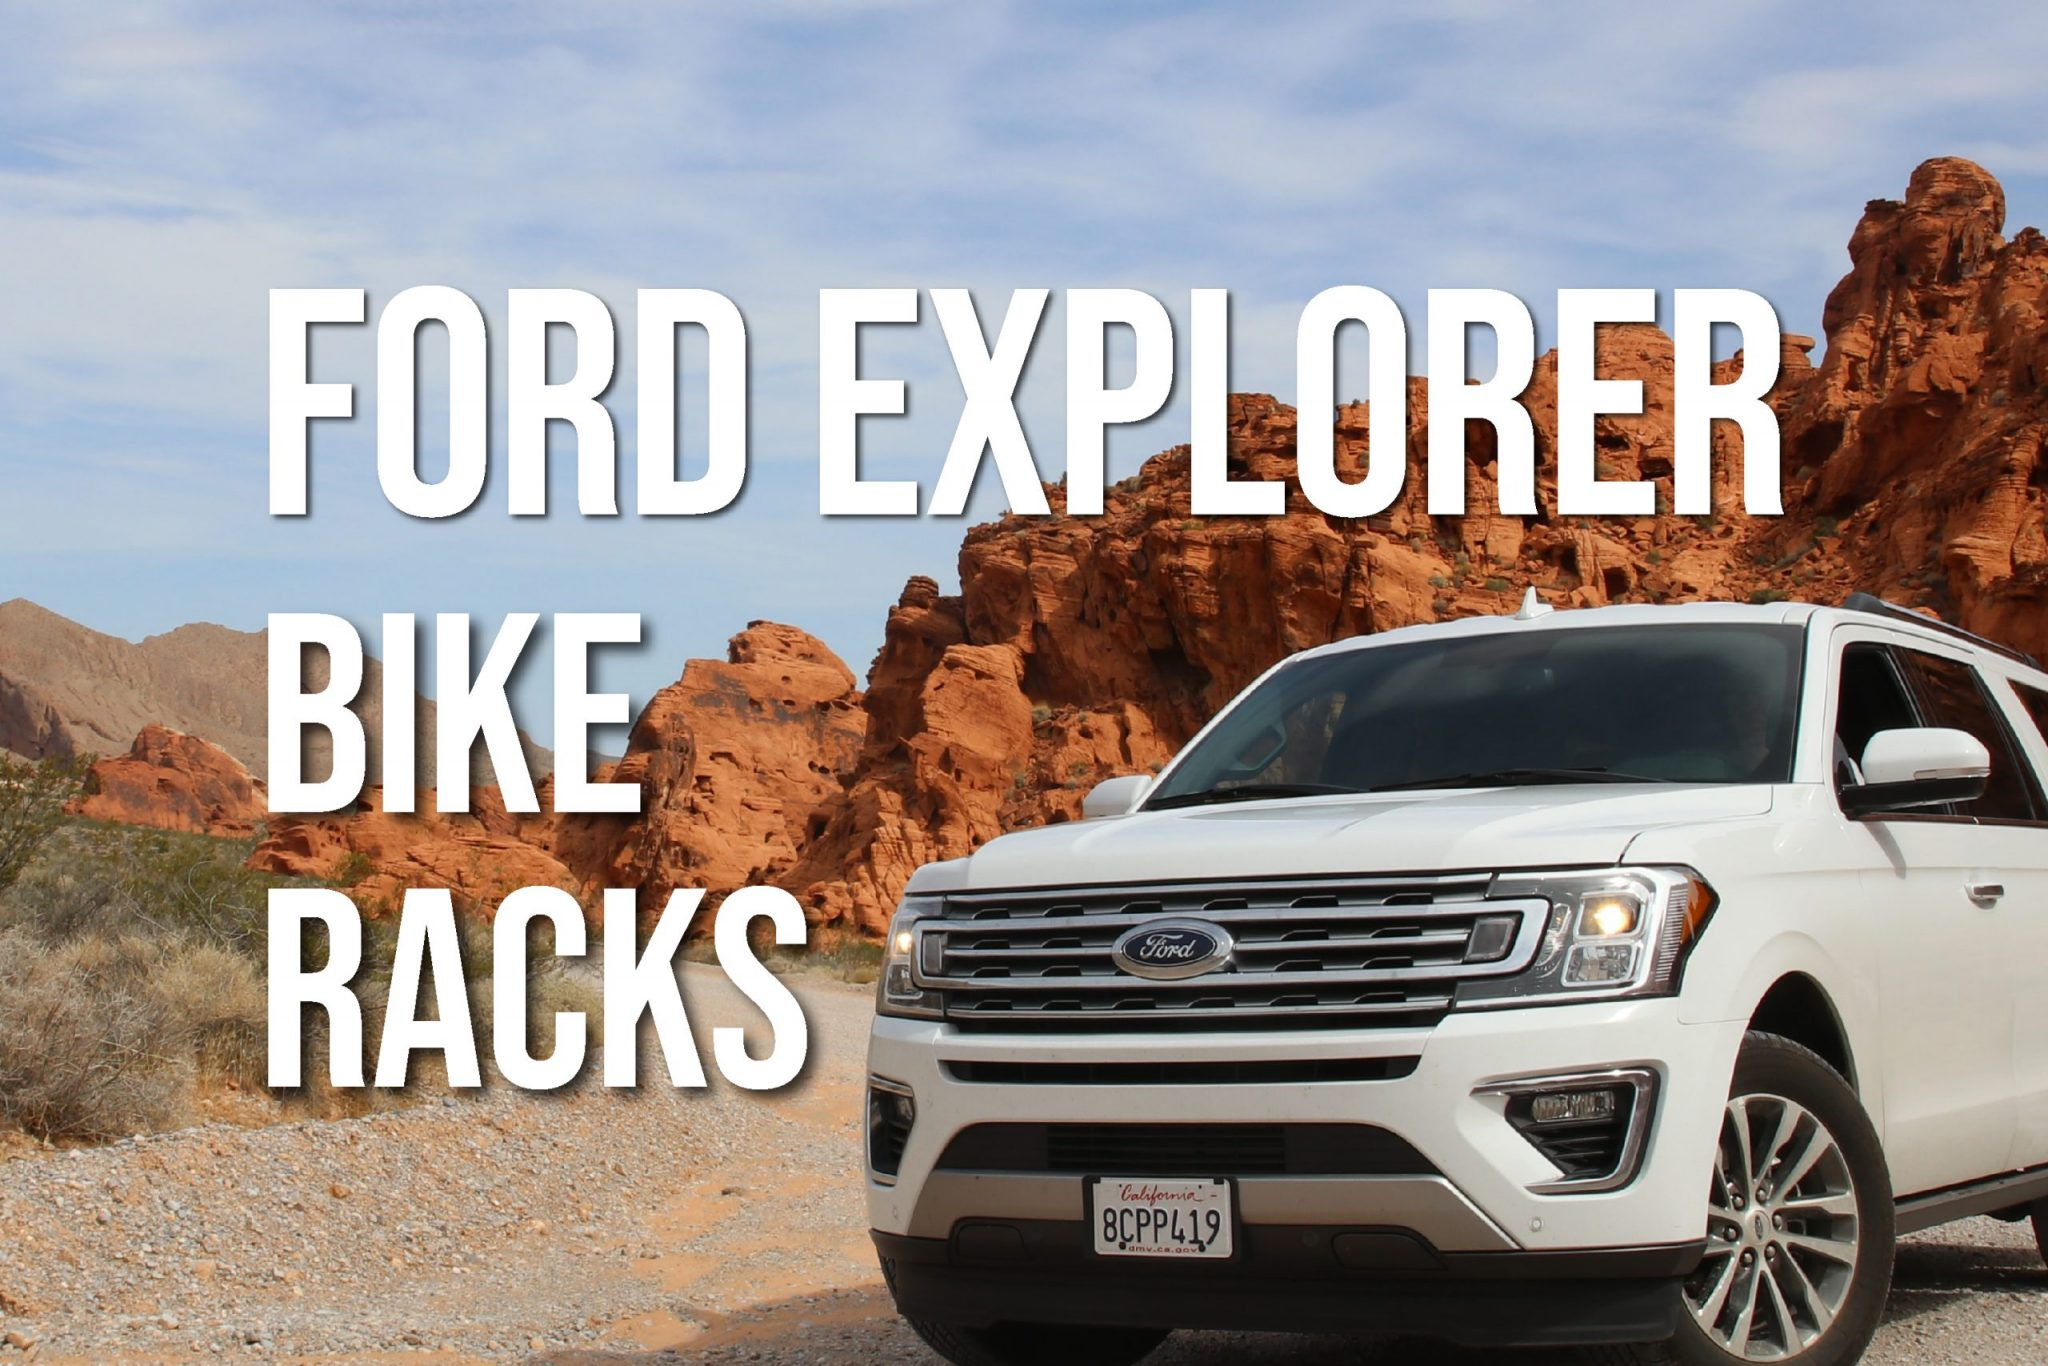 Best Bike Rack For Ford Explorer